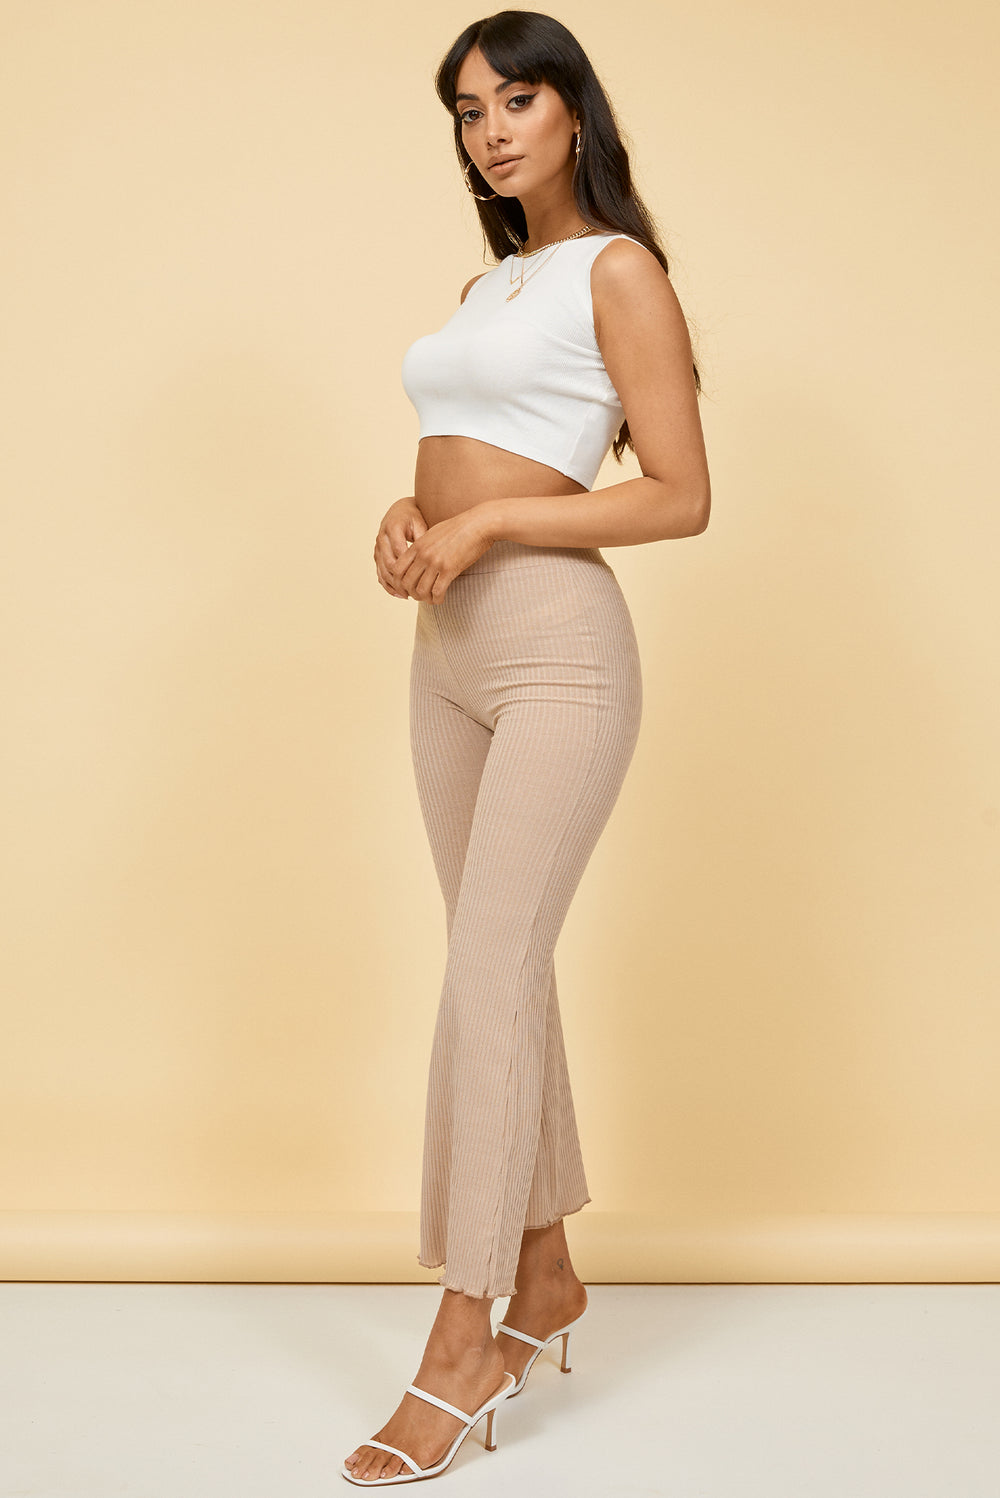 taupe high waisted pants, high waisted flare pants, flare pants